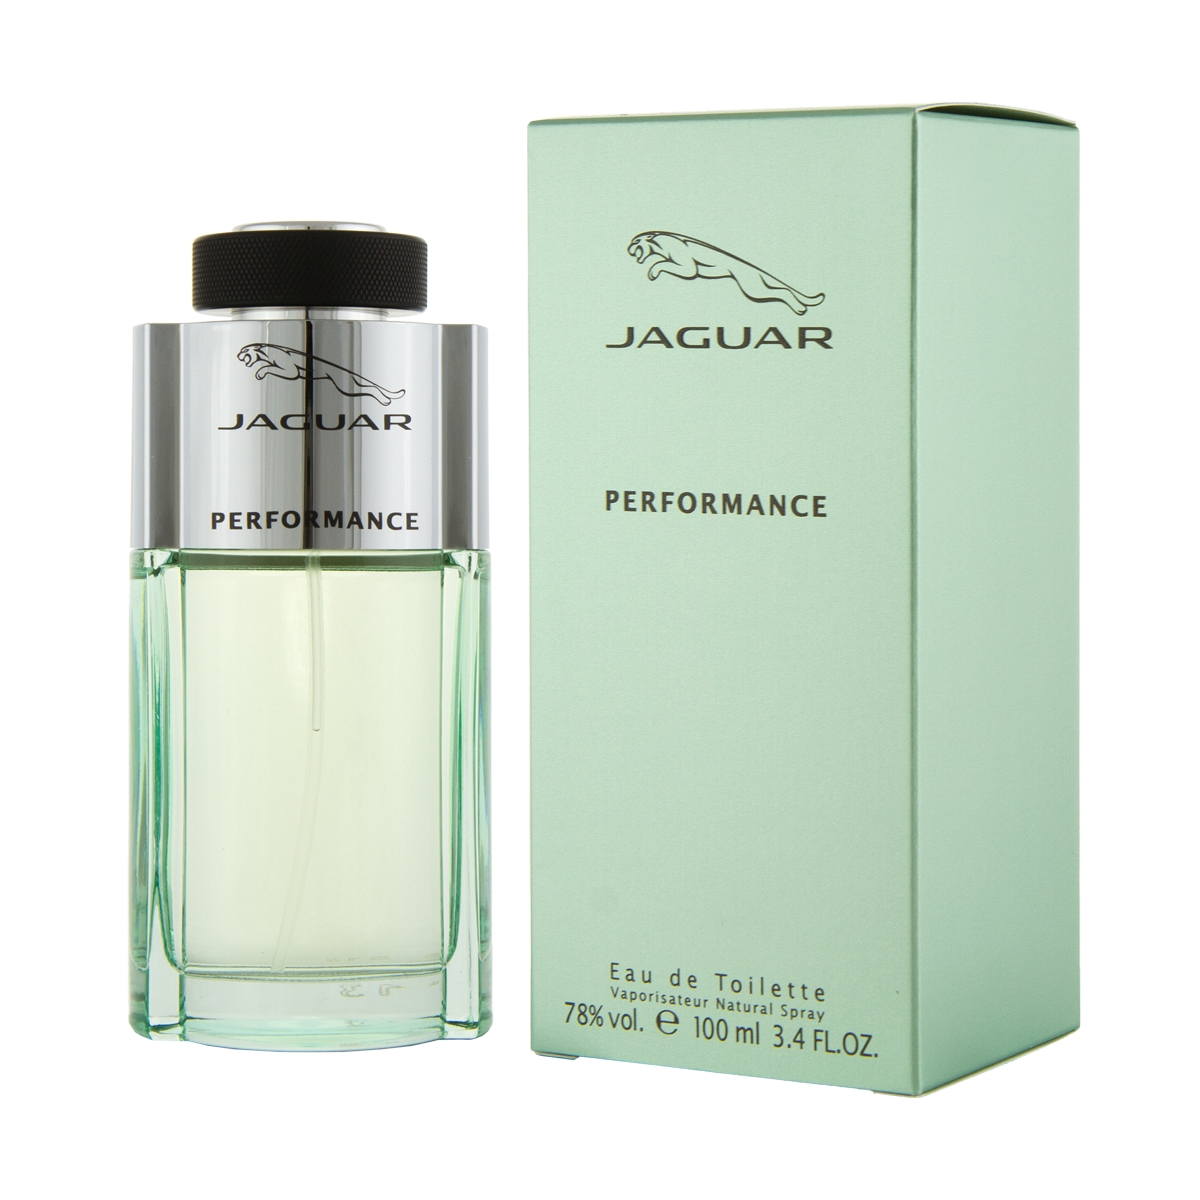 Jaguar Performance EDT 100 ml M